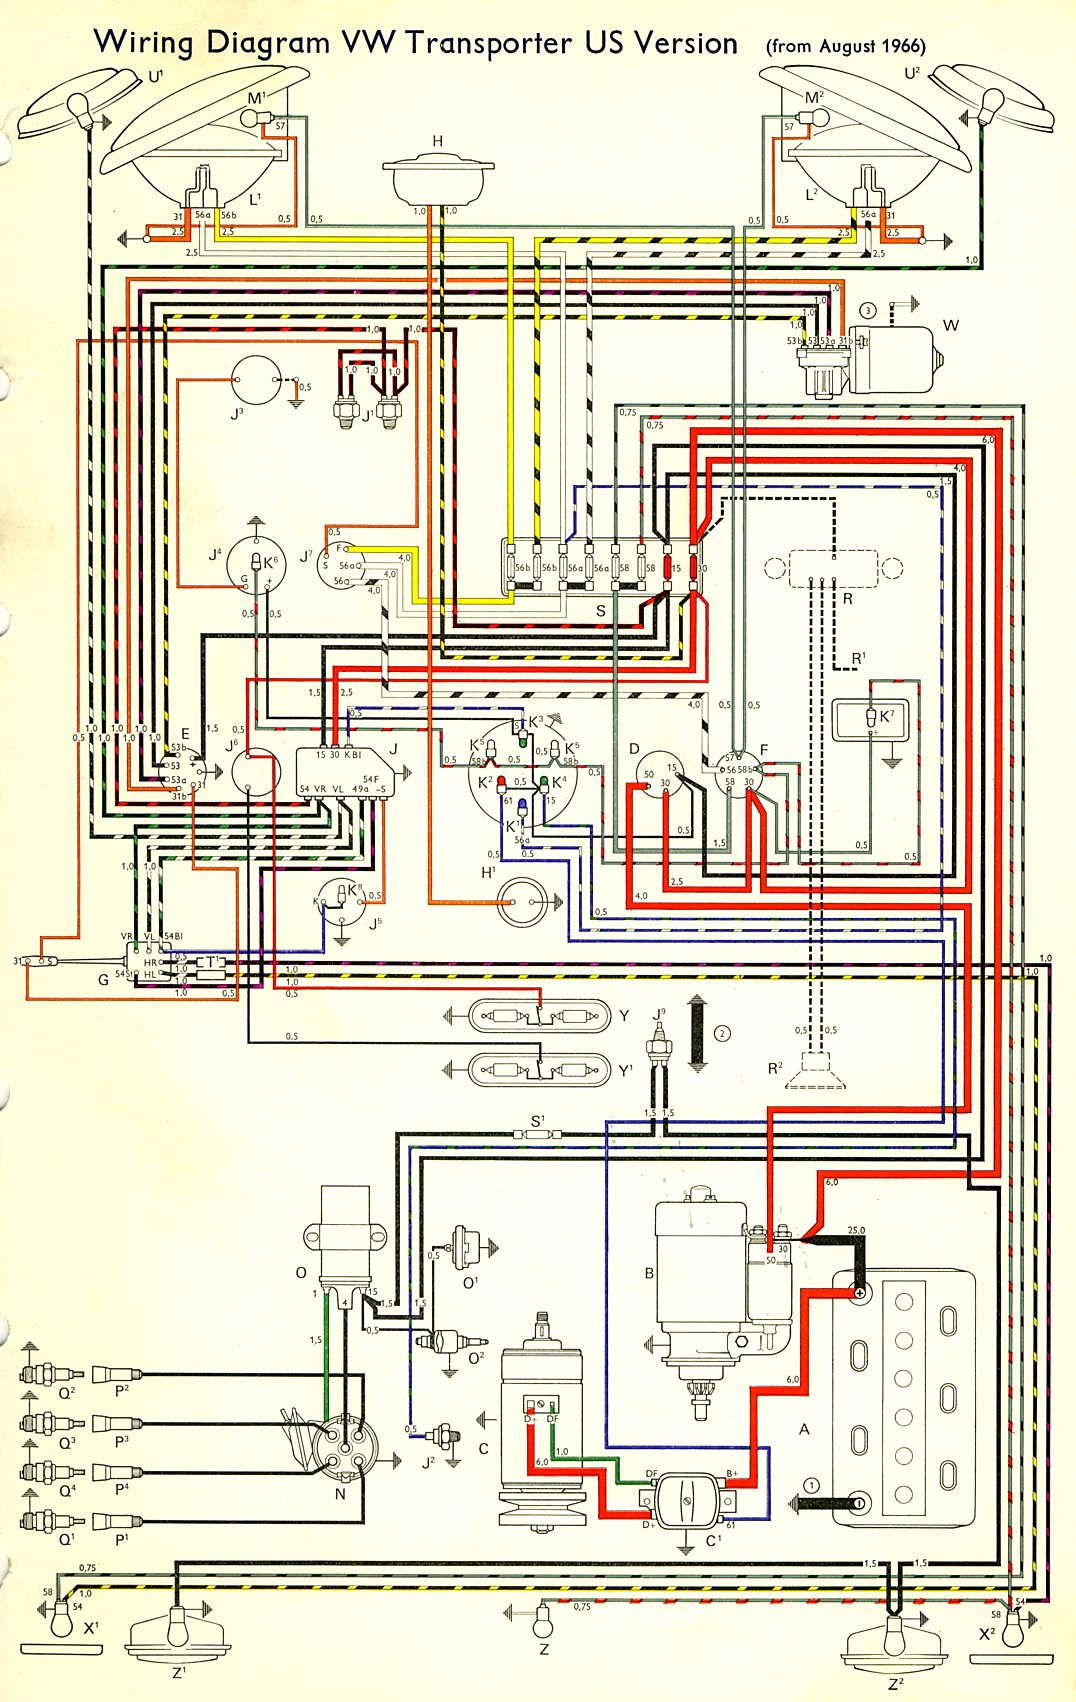 bus_67_USA 67 vw bus wiring harness 71 vw wiring harness \u2022 wiring diagrams Wiring Harness Diagram at mifinder.co